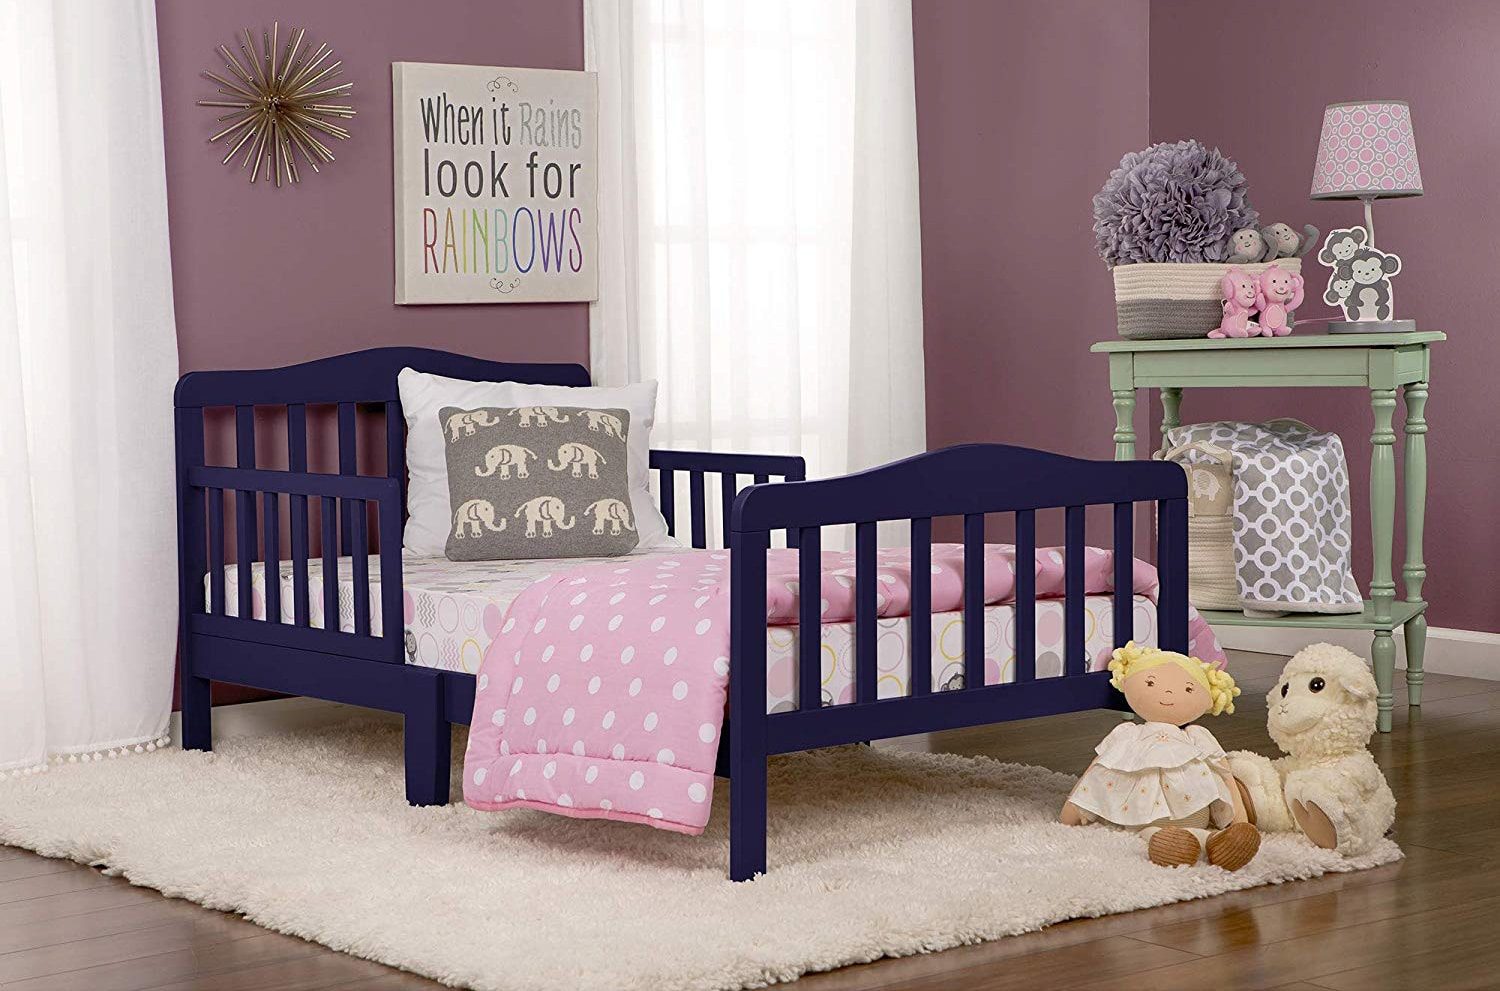 The 10 Best Toddler Beds to Buy in 2020 | Baby Cribs Central